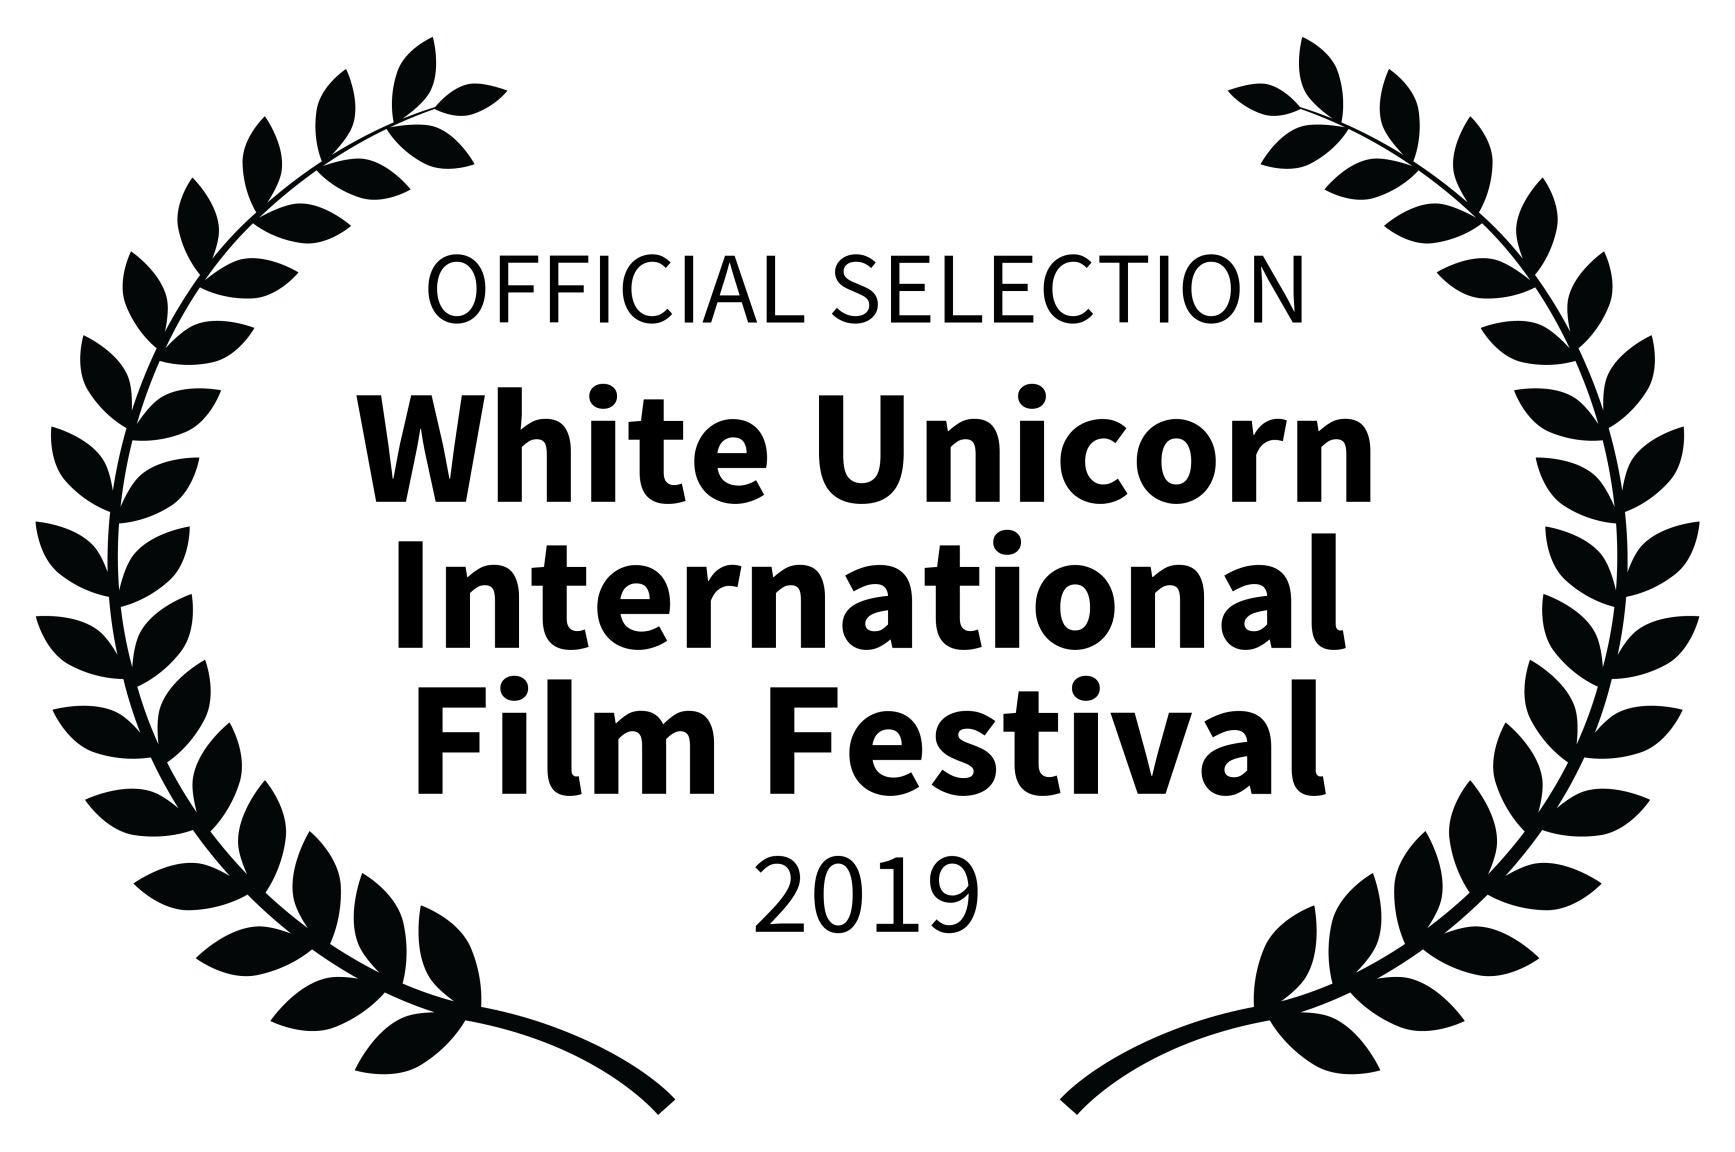 OFFICIAL SELECTION - White Unicorn International Film Festival - 2019